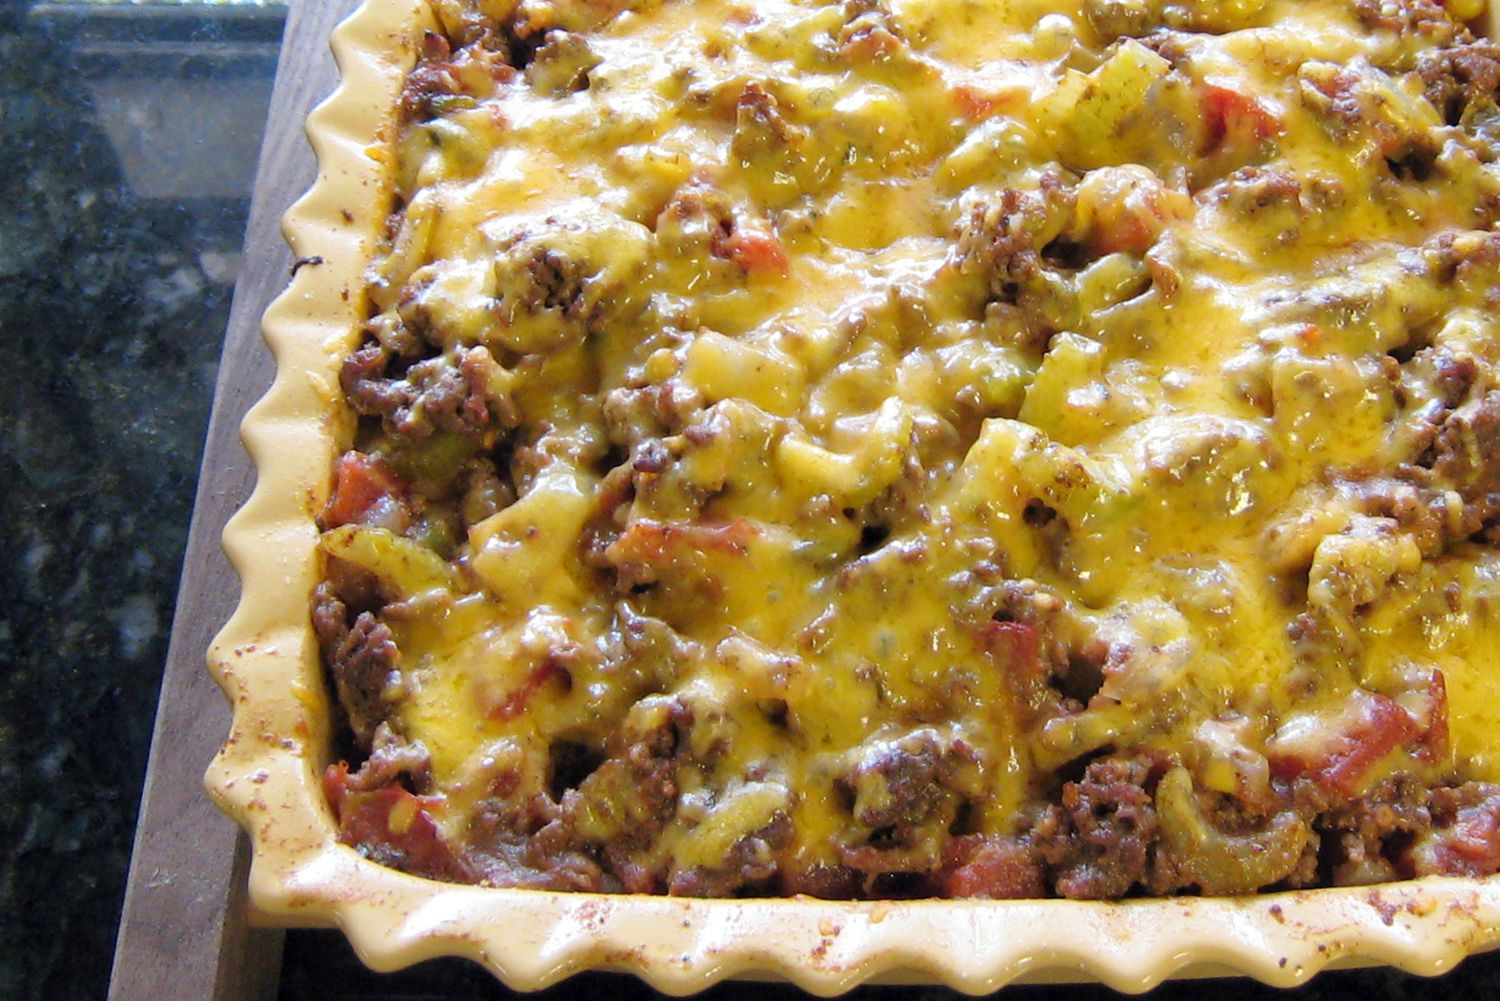 Southwestern Style Beef And Potato Casserole Recipe